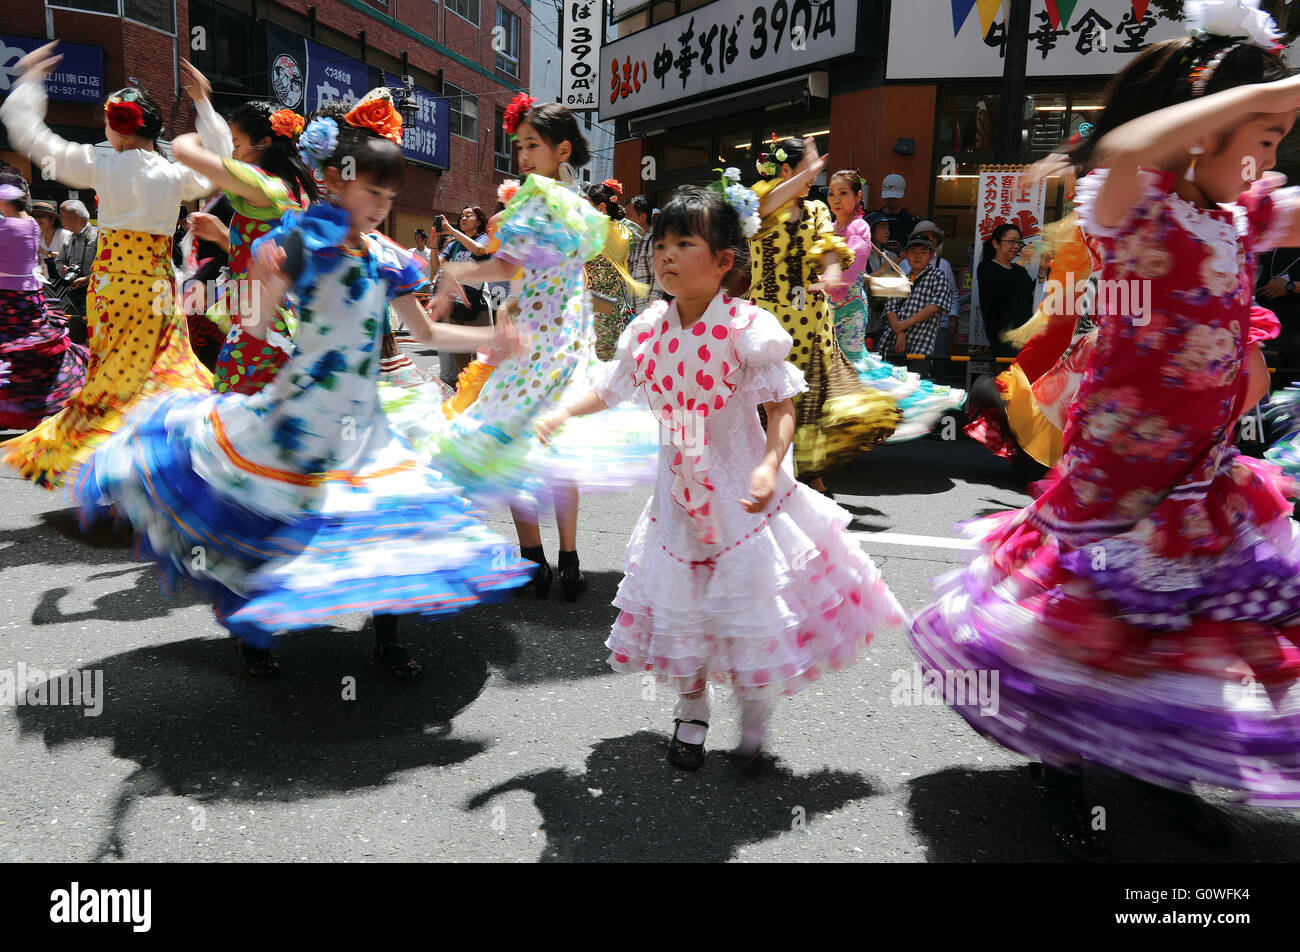 Tokyo, Japon. 4 mai, 2016. Les amateurs de flamenco du Japon en robes colorées effectuer SevillAnnas dansant Photo Stock